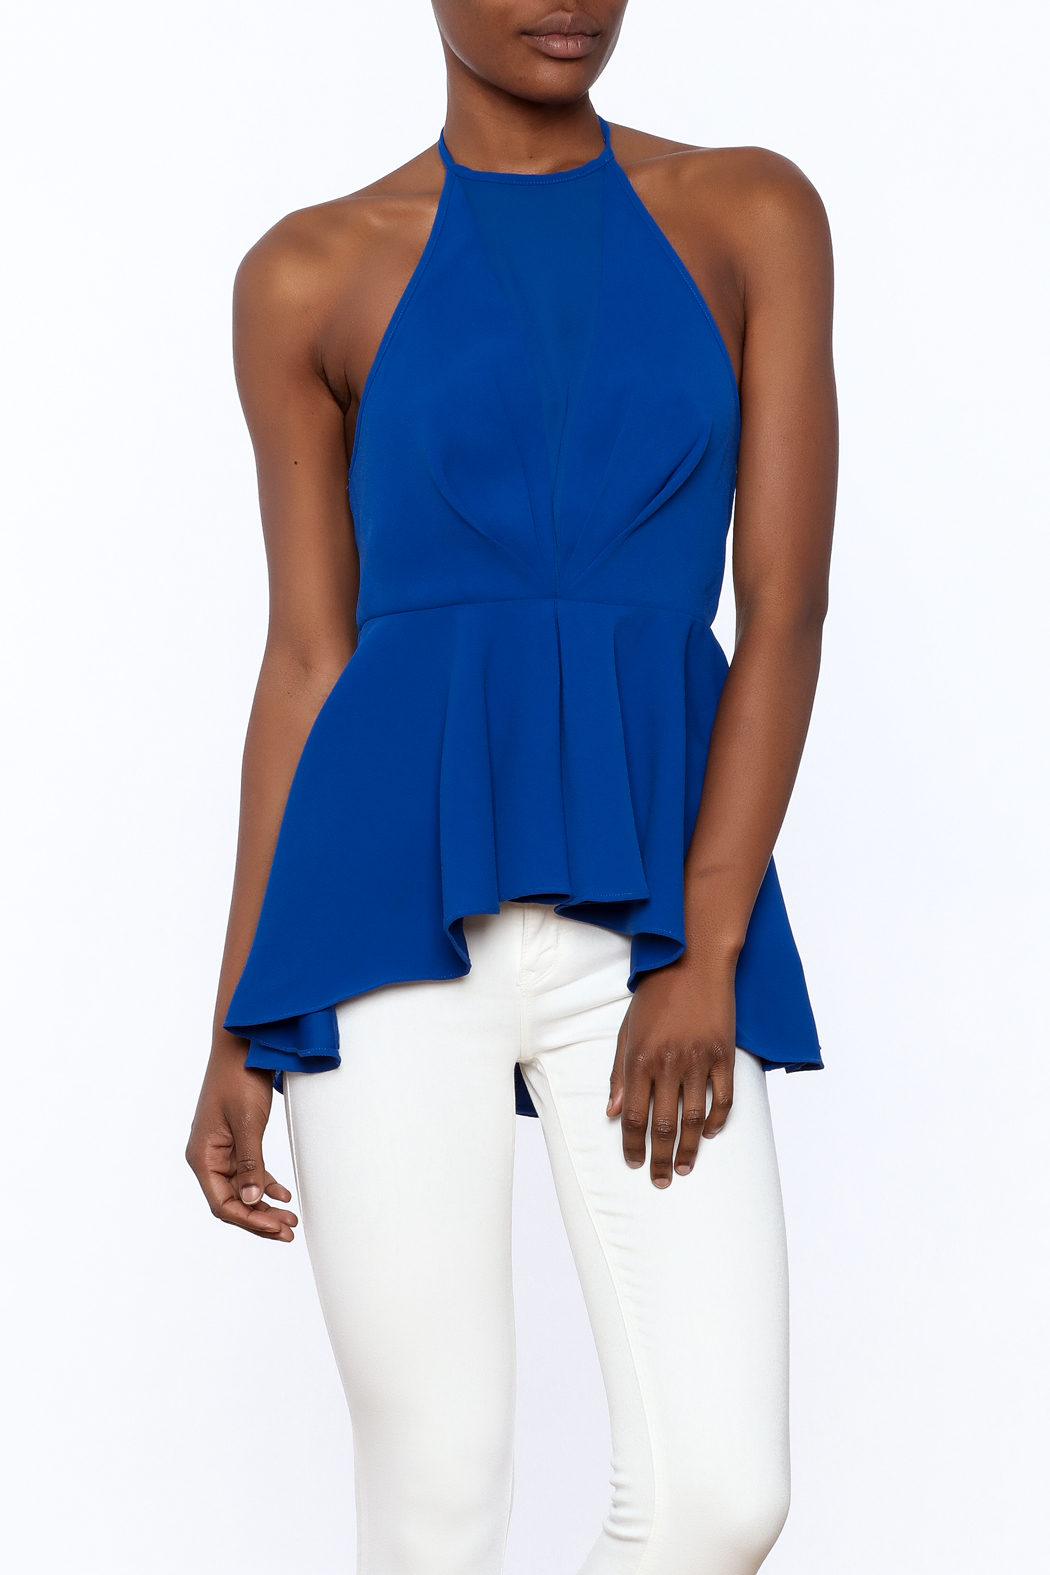 d0a646ac5e0 Do   Be Royal Blue Halter Top from Williamsburg by Fanaberie ...